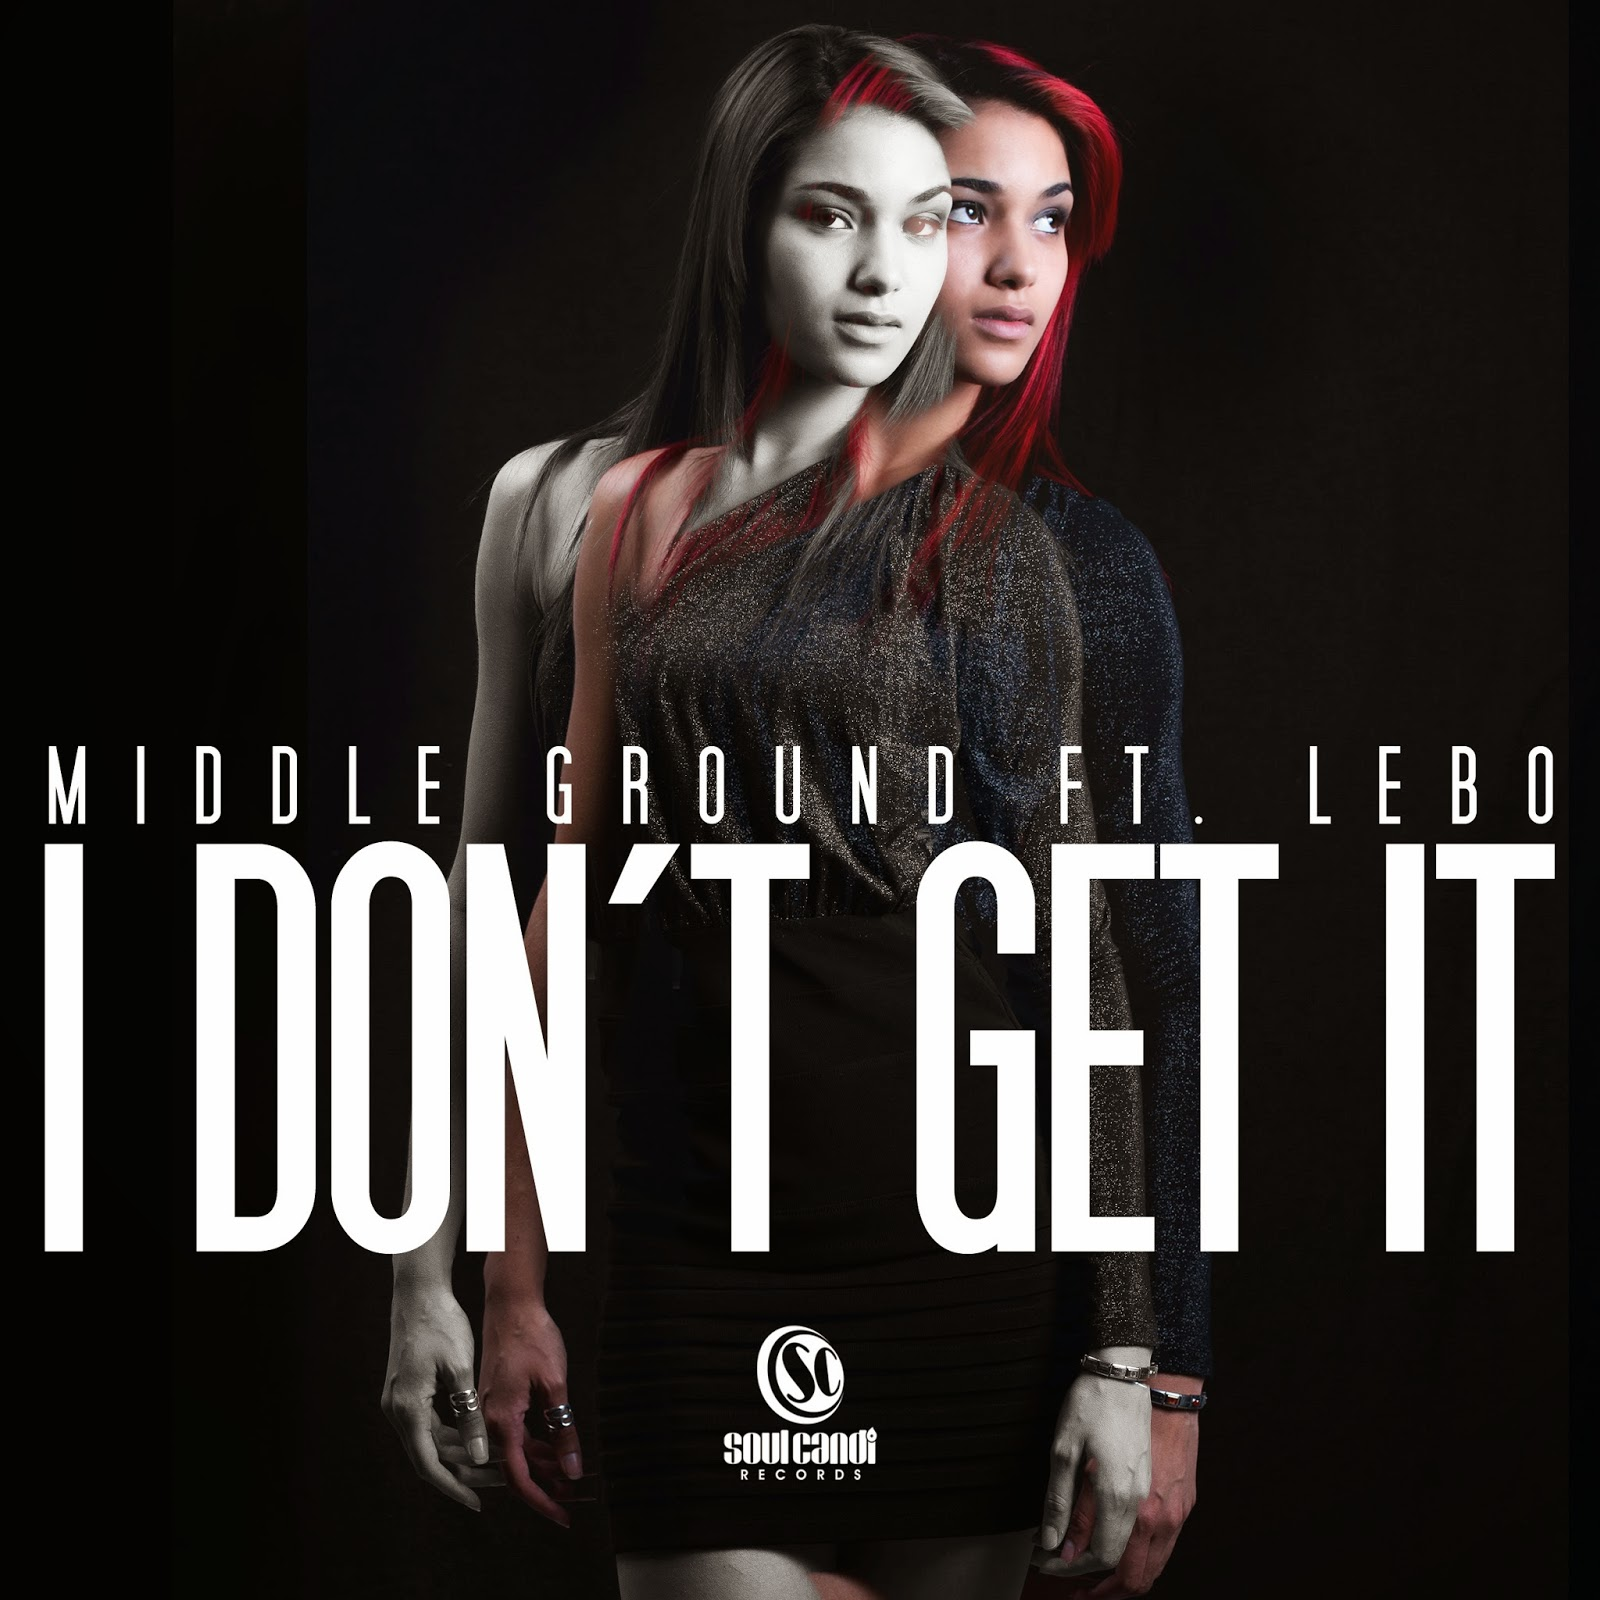 Middle Ground feat. Lebo - I Don't Get It